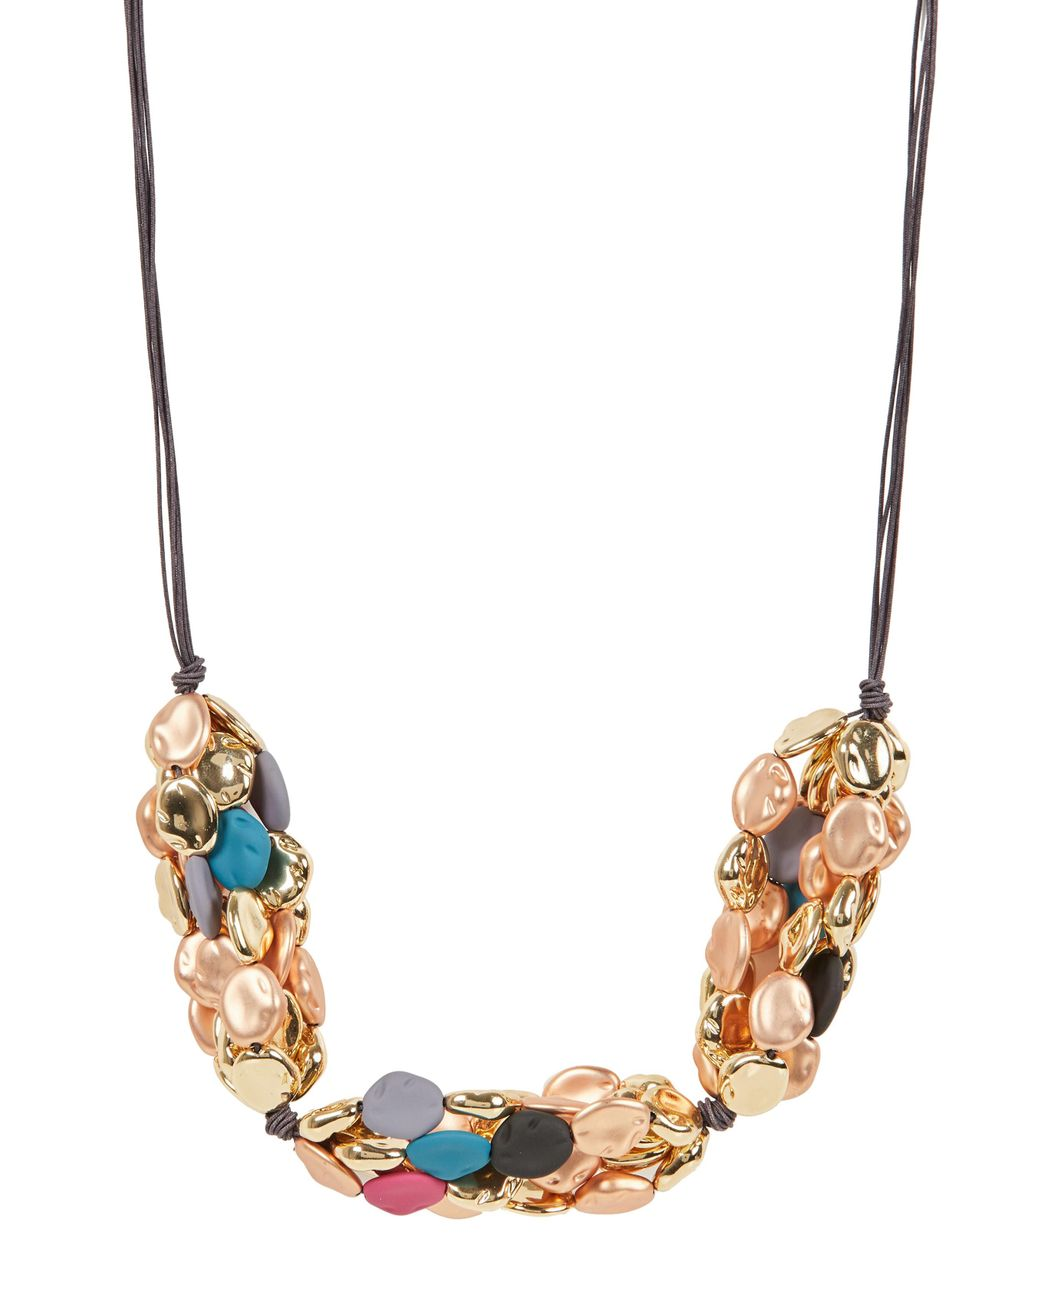 Oliver Style Blue Chunky Wooden Bead Necklace Grey /& Gold Tone Snake Chain